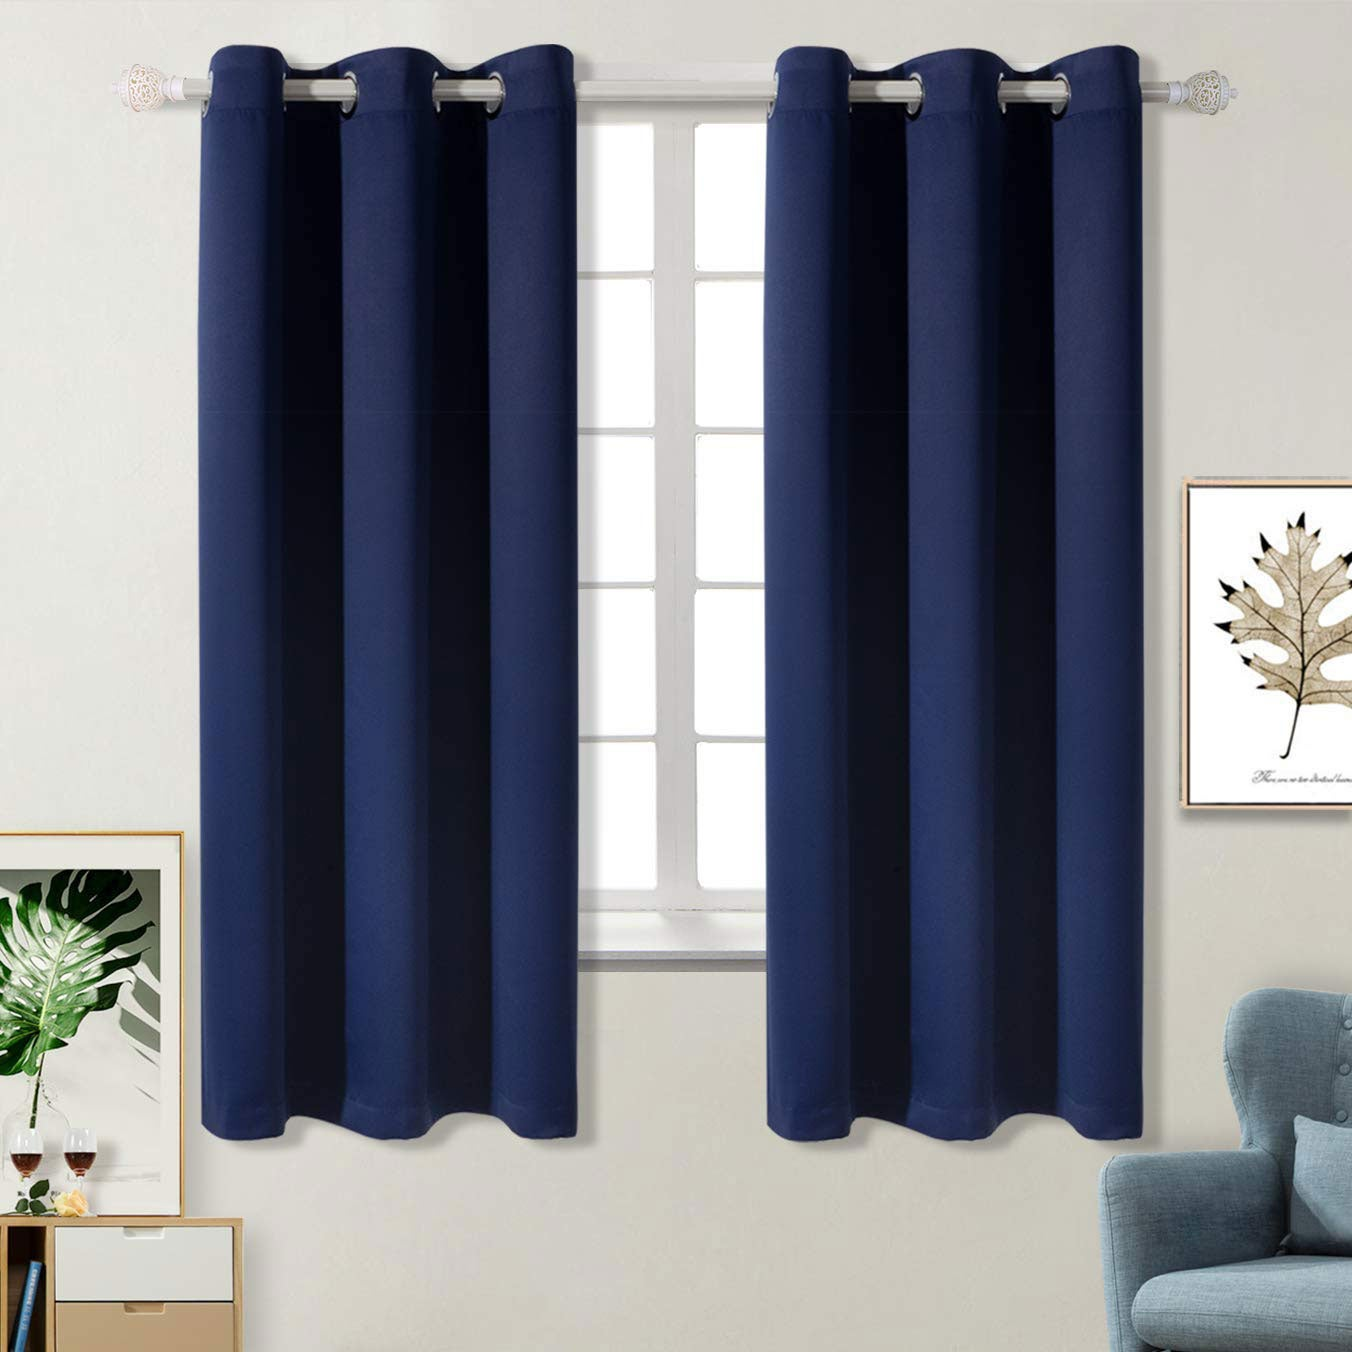 BGment Blackout Curtains for Bedroom